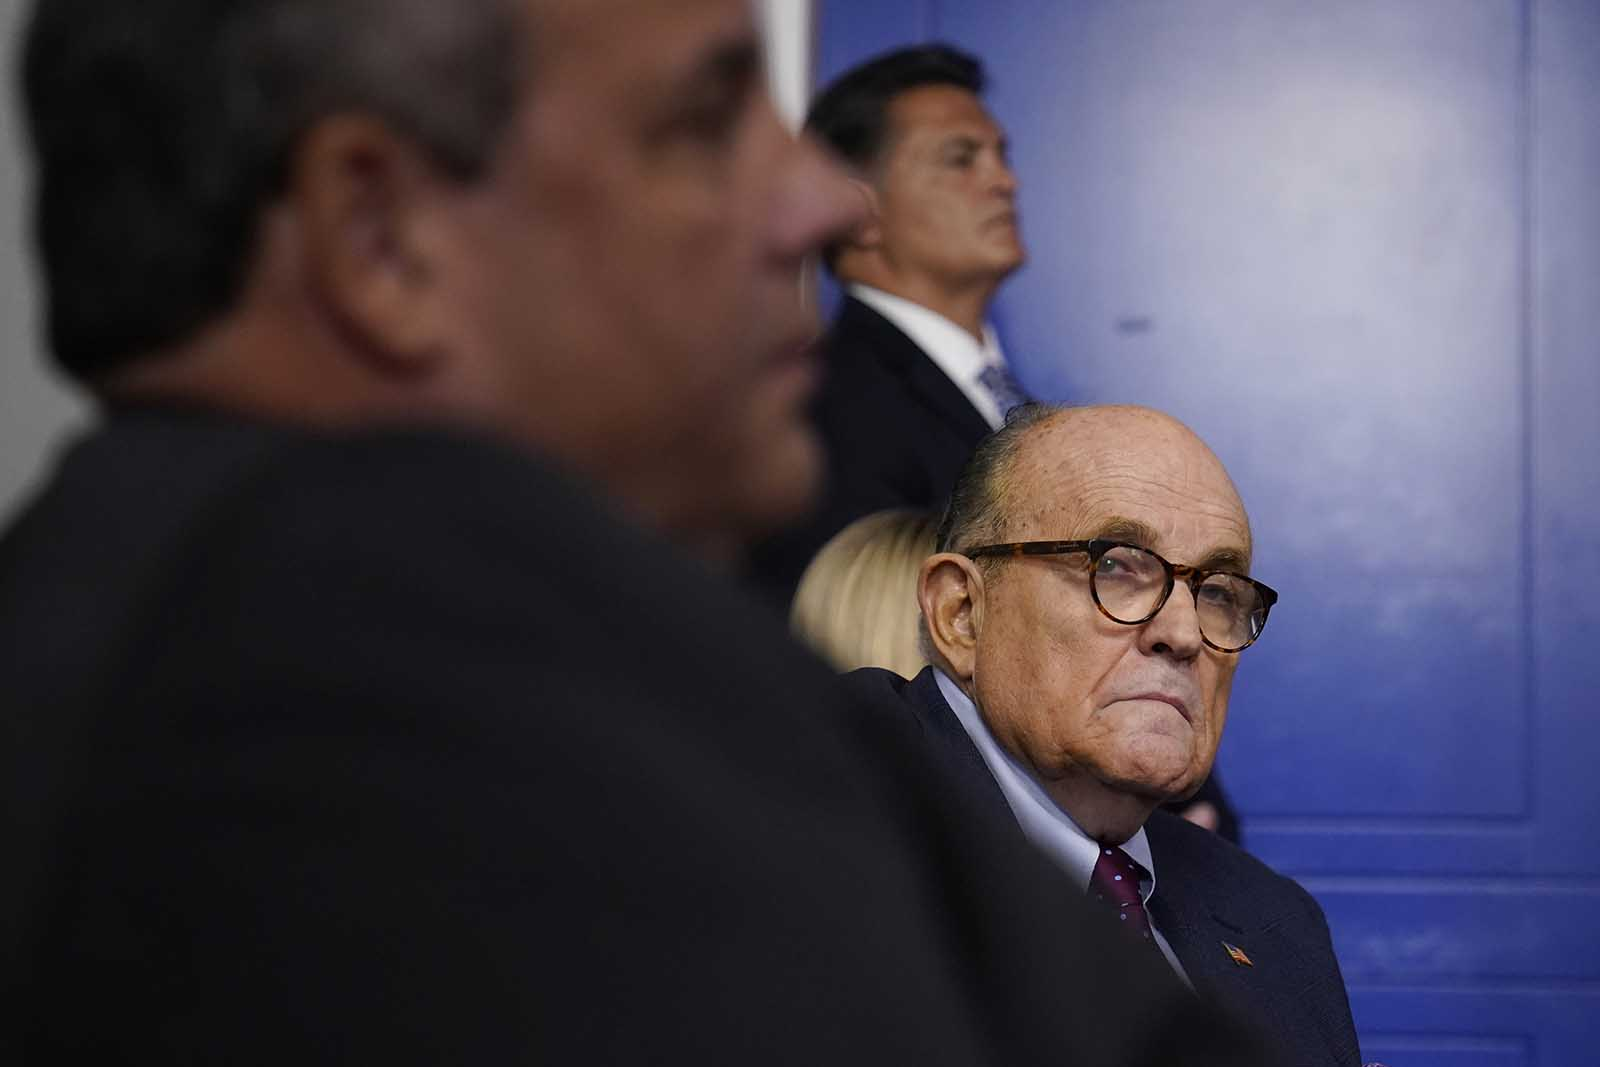 Former New Jersey Gov. Chris Christie, left, and former New York Mayor Rudy Giuliani attend a news conference with President Donald Trump at the White House, on Sunday, September 27 in Washington.